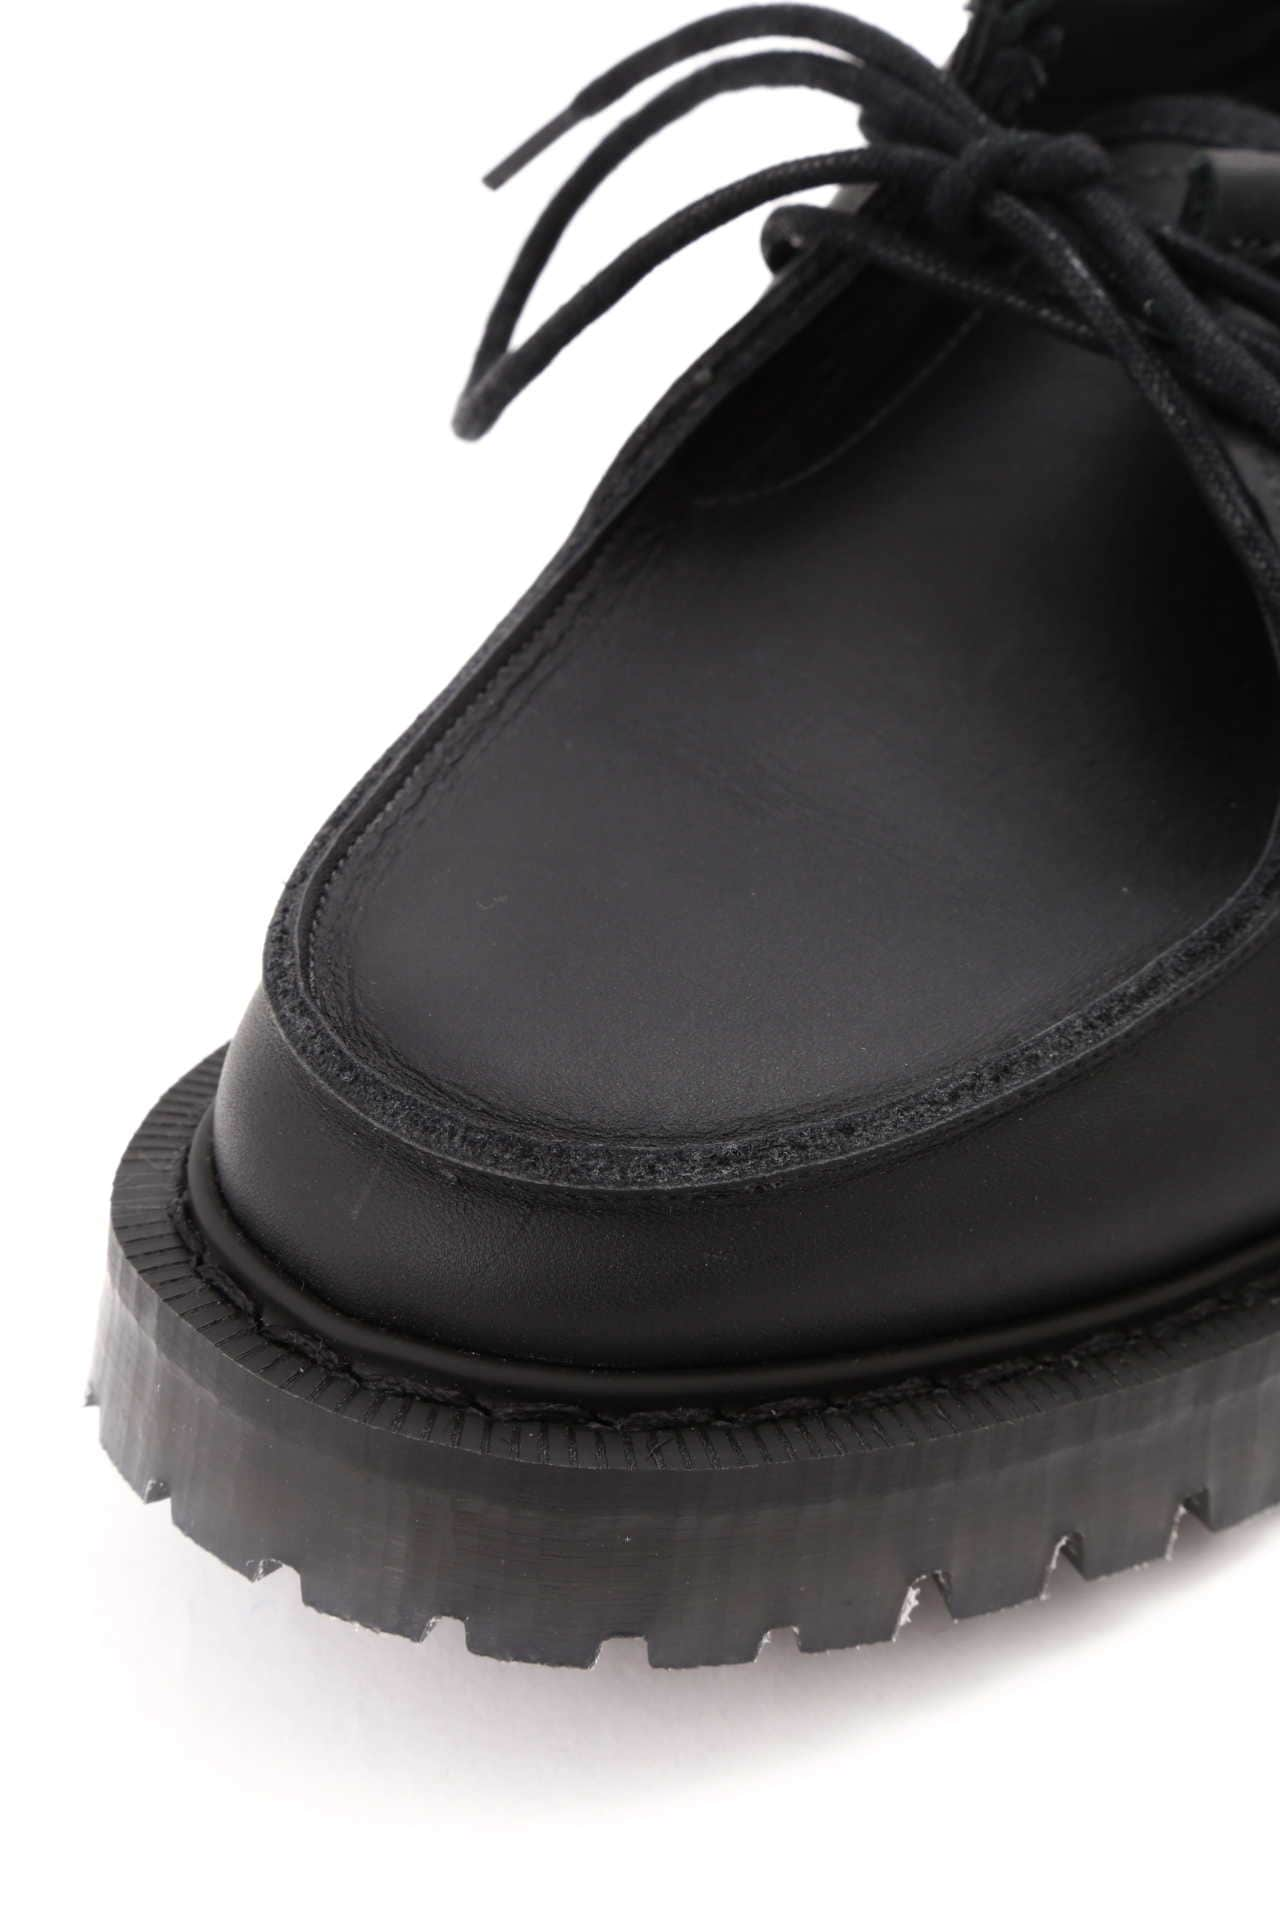 MHL MOCCASIN SHOE(MHL SHOP限定)4